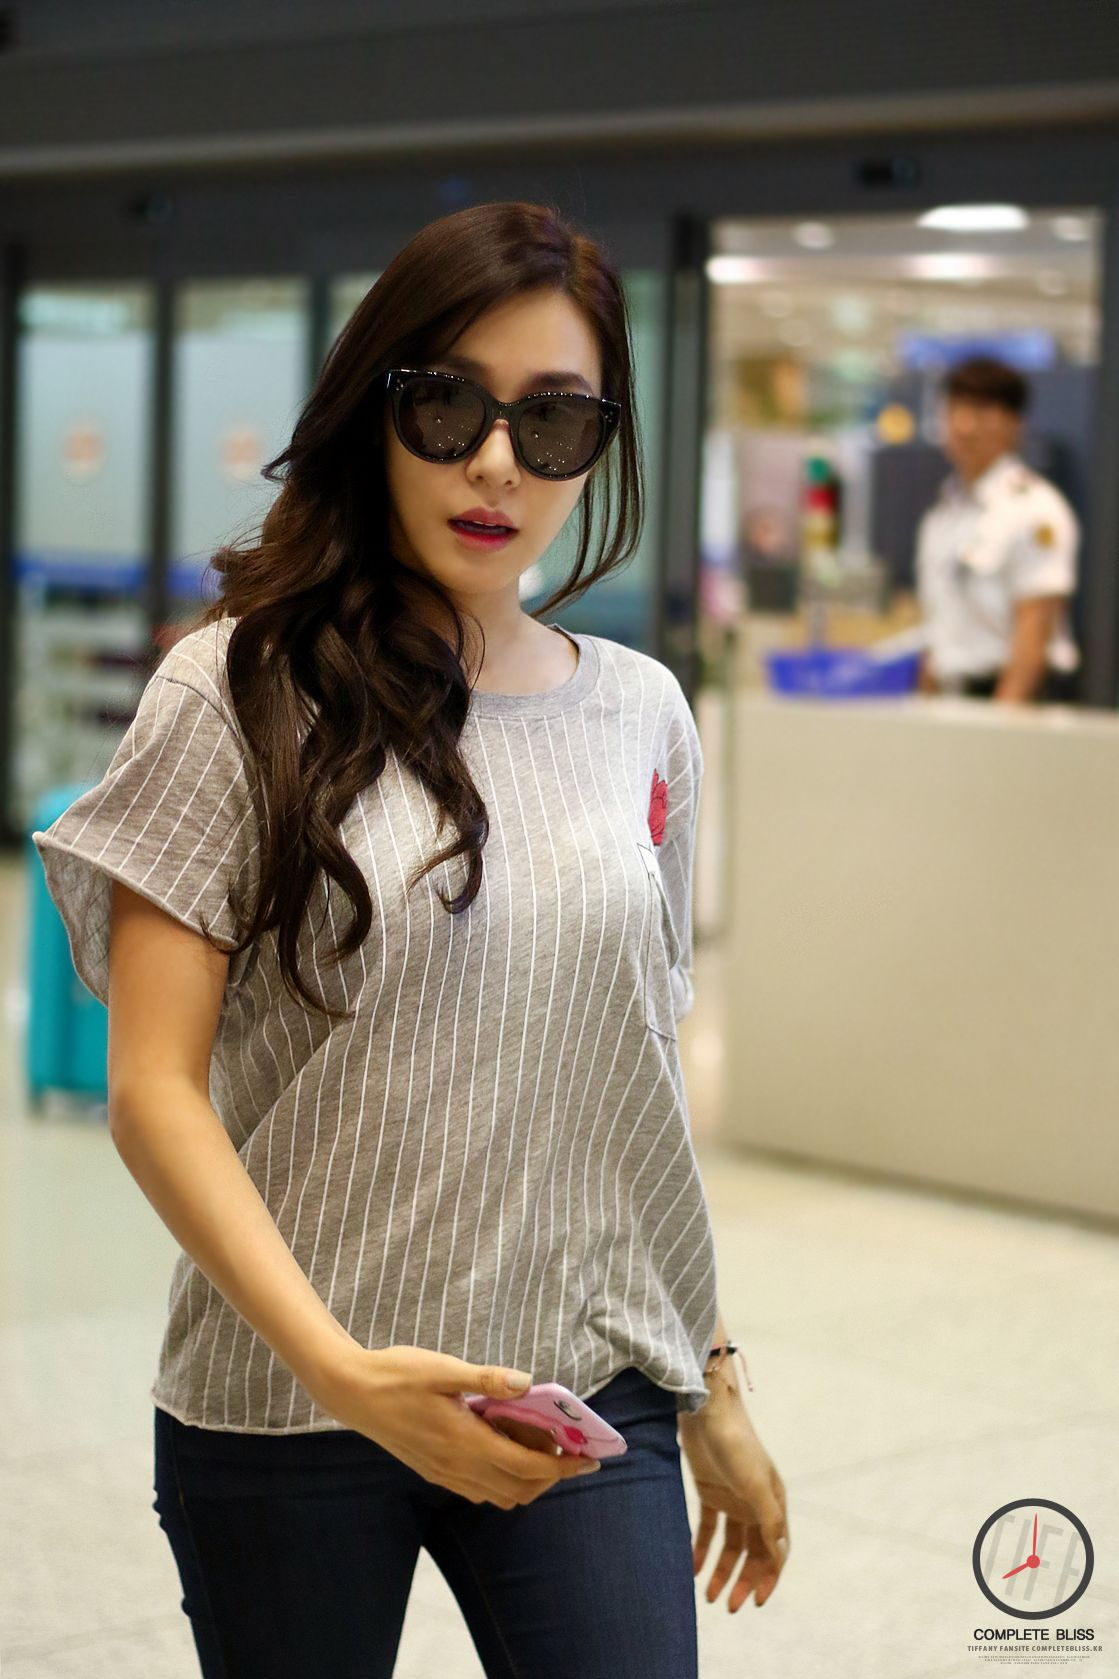 snsd tiffany airport fashion 150818 2015 snsd airport